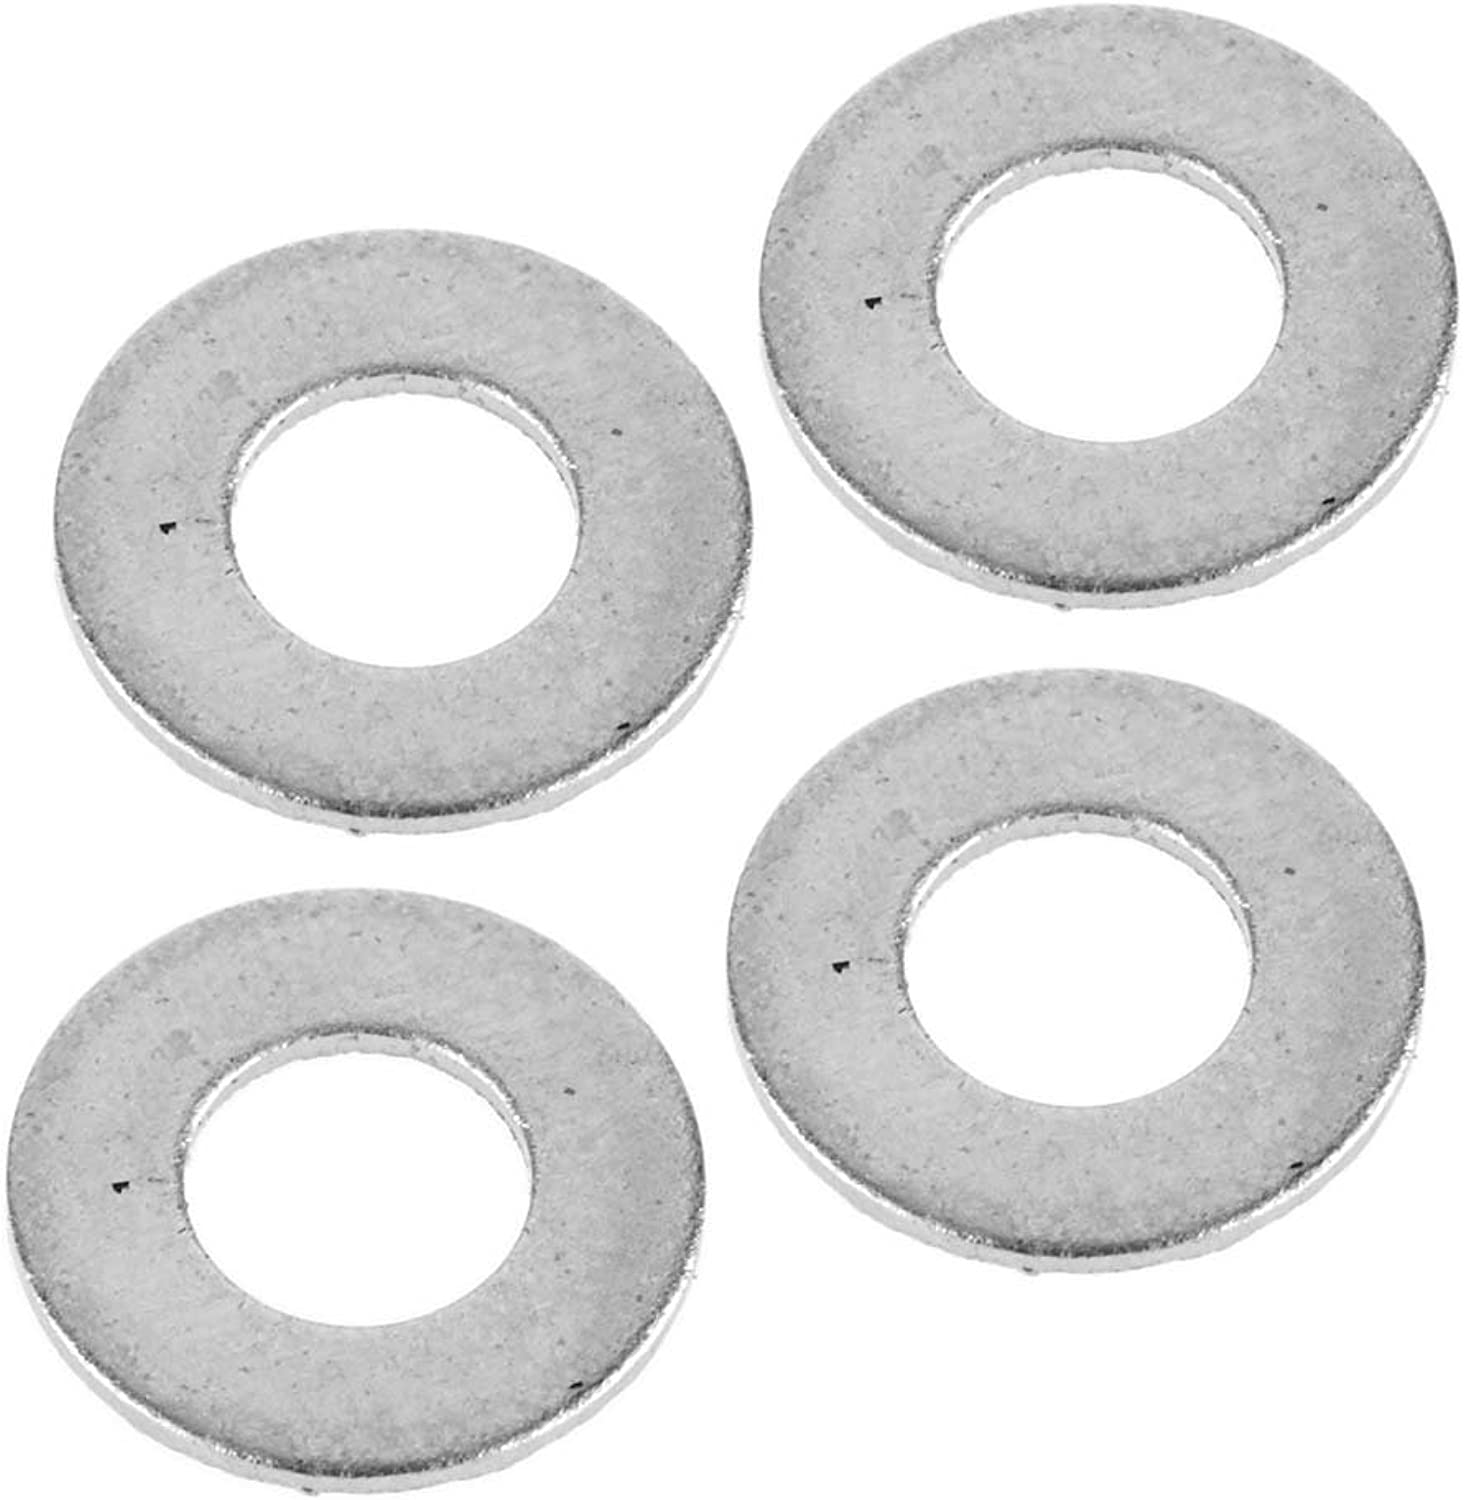 ARRMA AR709029 Washer 4 R C Car Part, 3 x 7 x 0.5mm